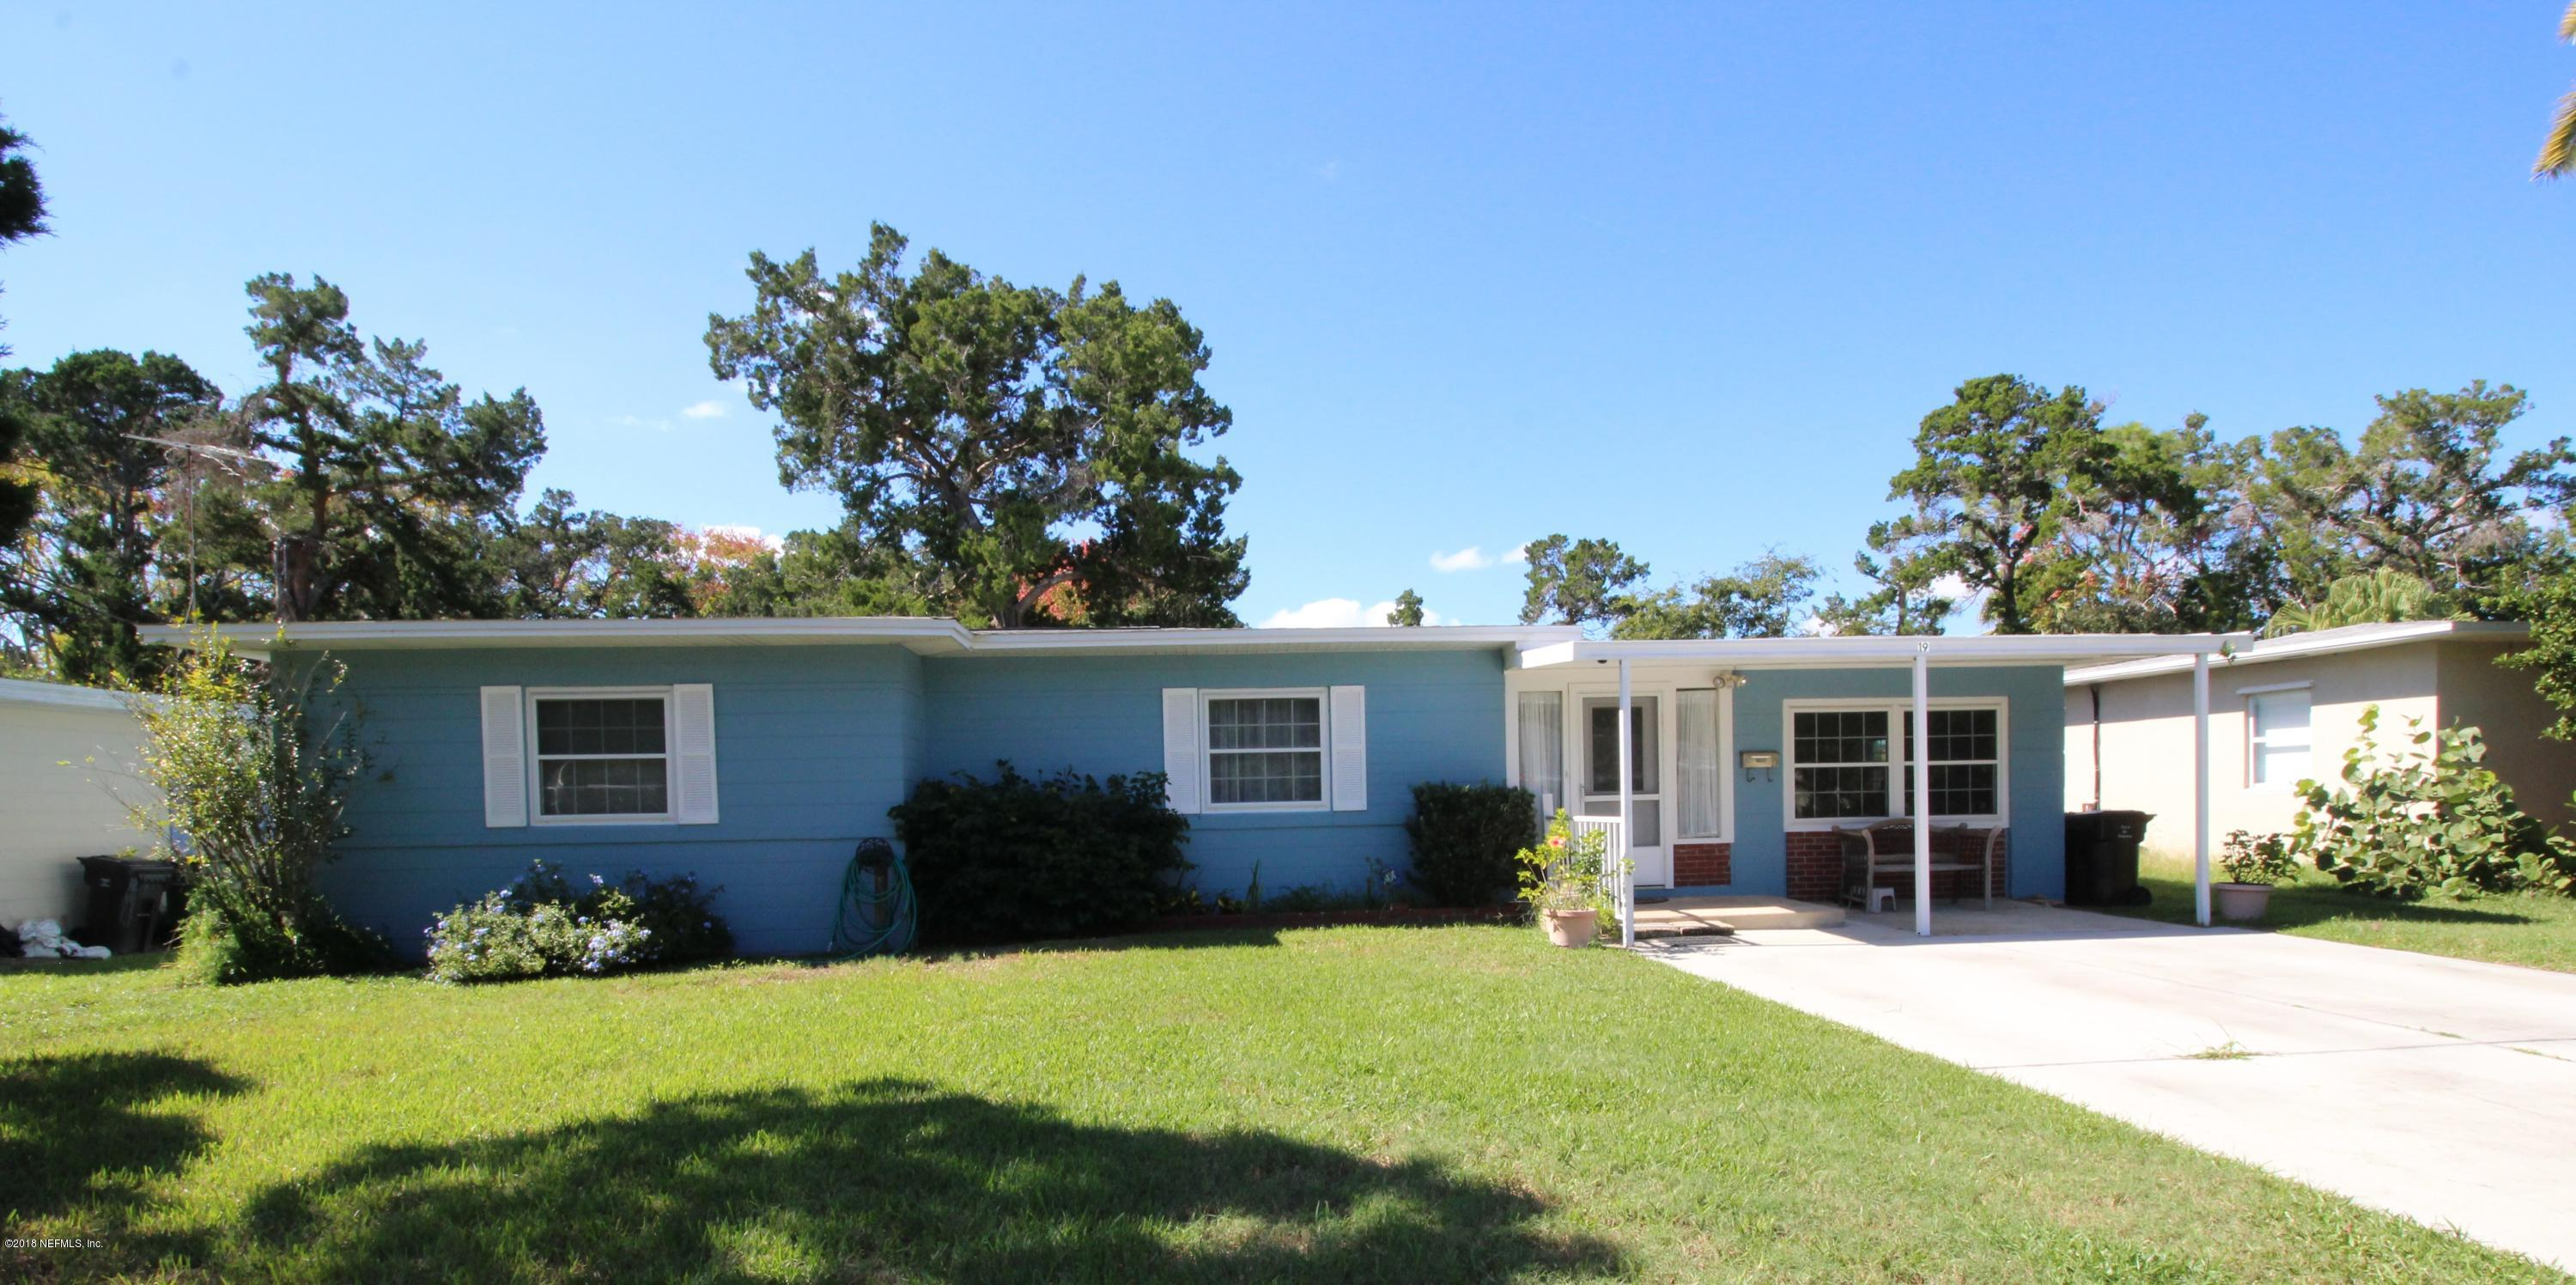 19 COQUINA, ST AUGUSTINE, FLORIDA 32080, 3 Bedrooms Bedrooms, ,1 BathroomBathrooms,Residential - single family,For sale,COQUINA,965203